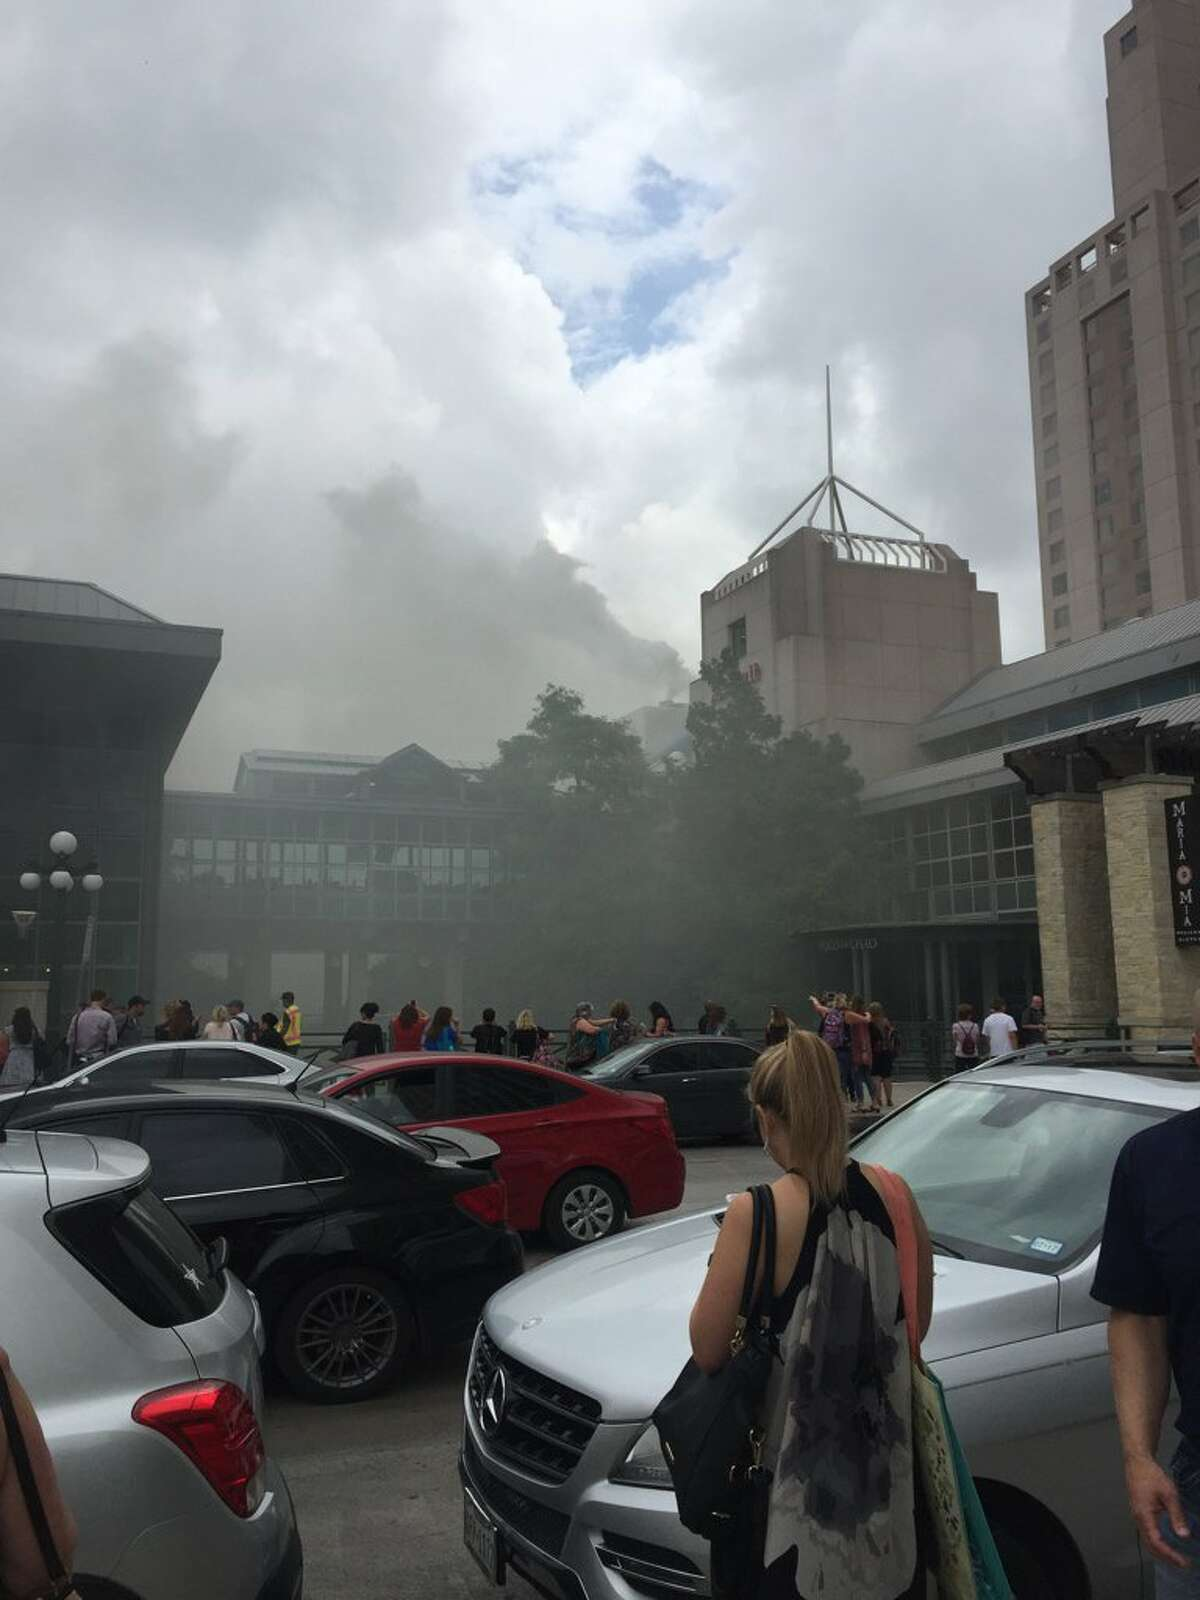 Smoke can be seen pouring from the area around the Shops at Rivercenter downtown as emergency personnel respond to a reported fire in the area.